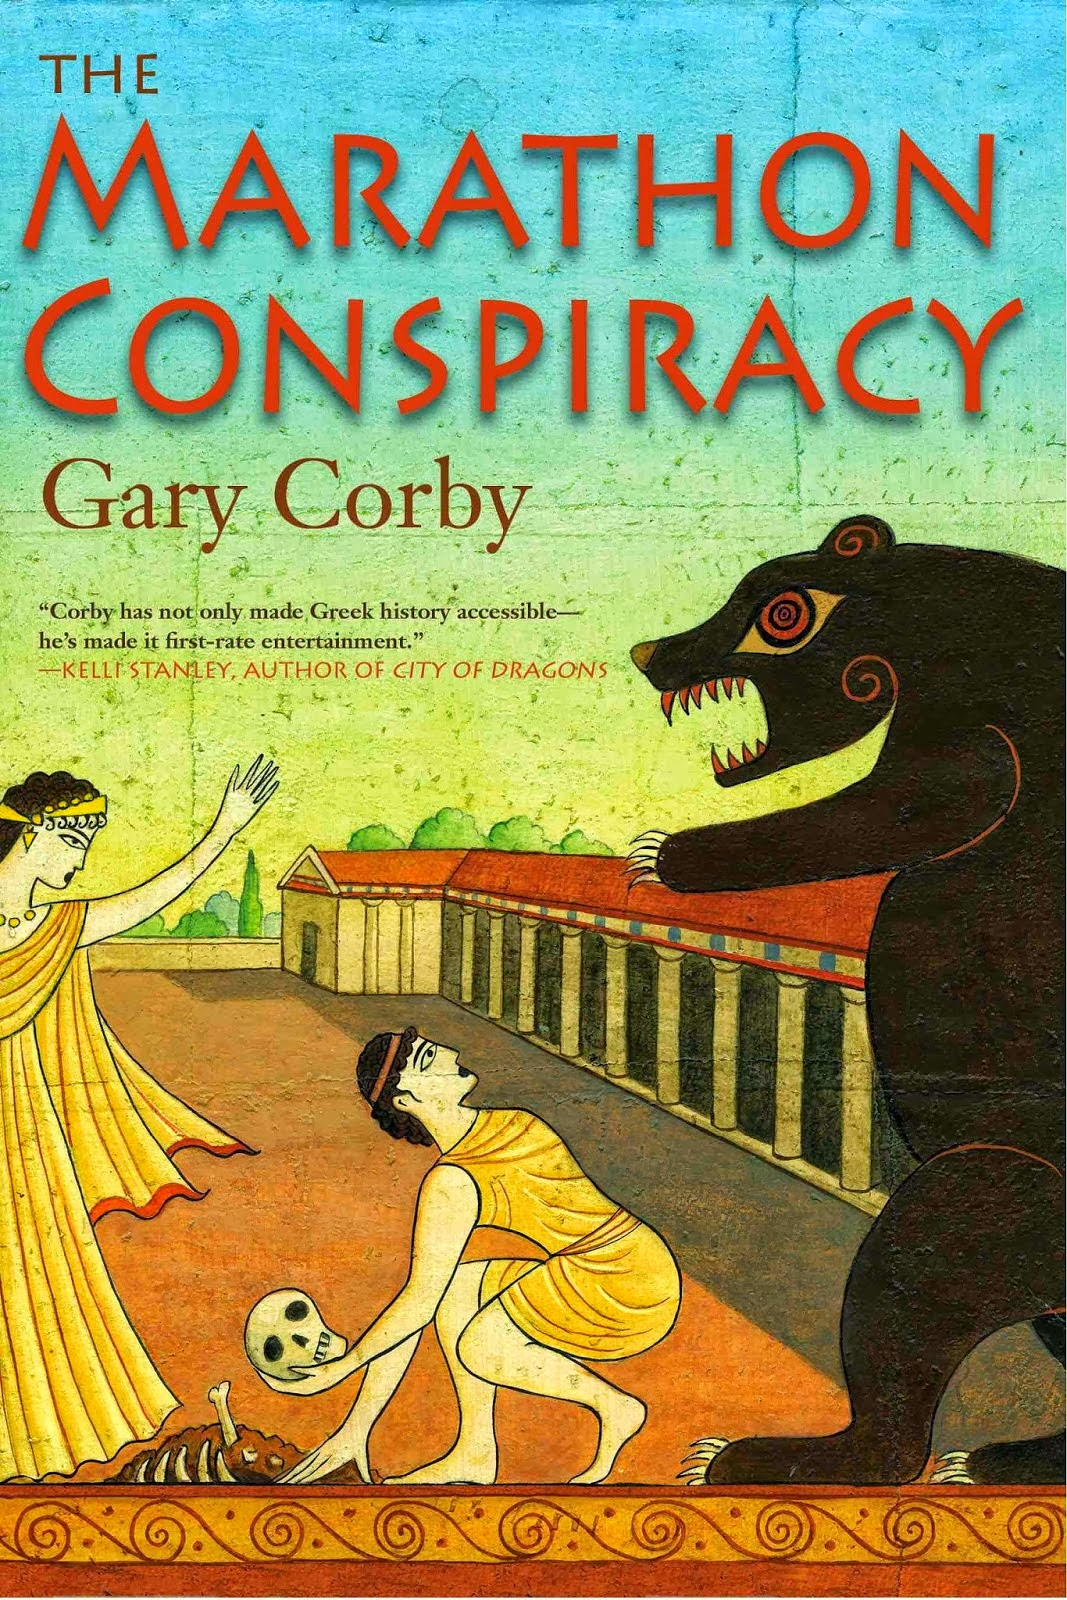 http://www.amazon.com/The-Marathon-Conspiracy-Gary-Corby/dp/161695387X